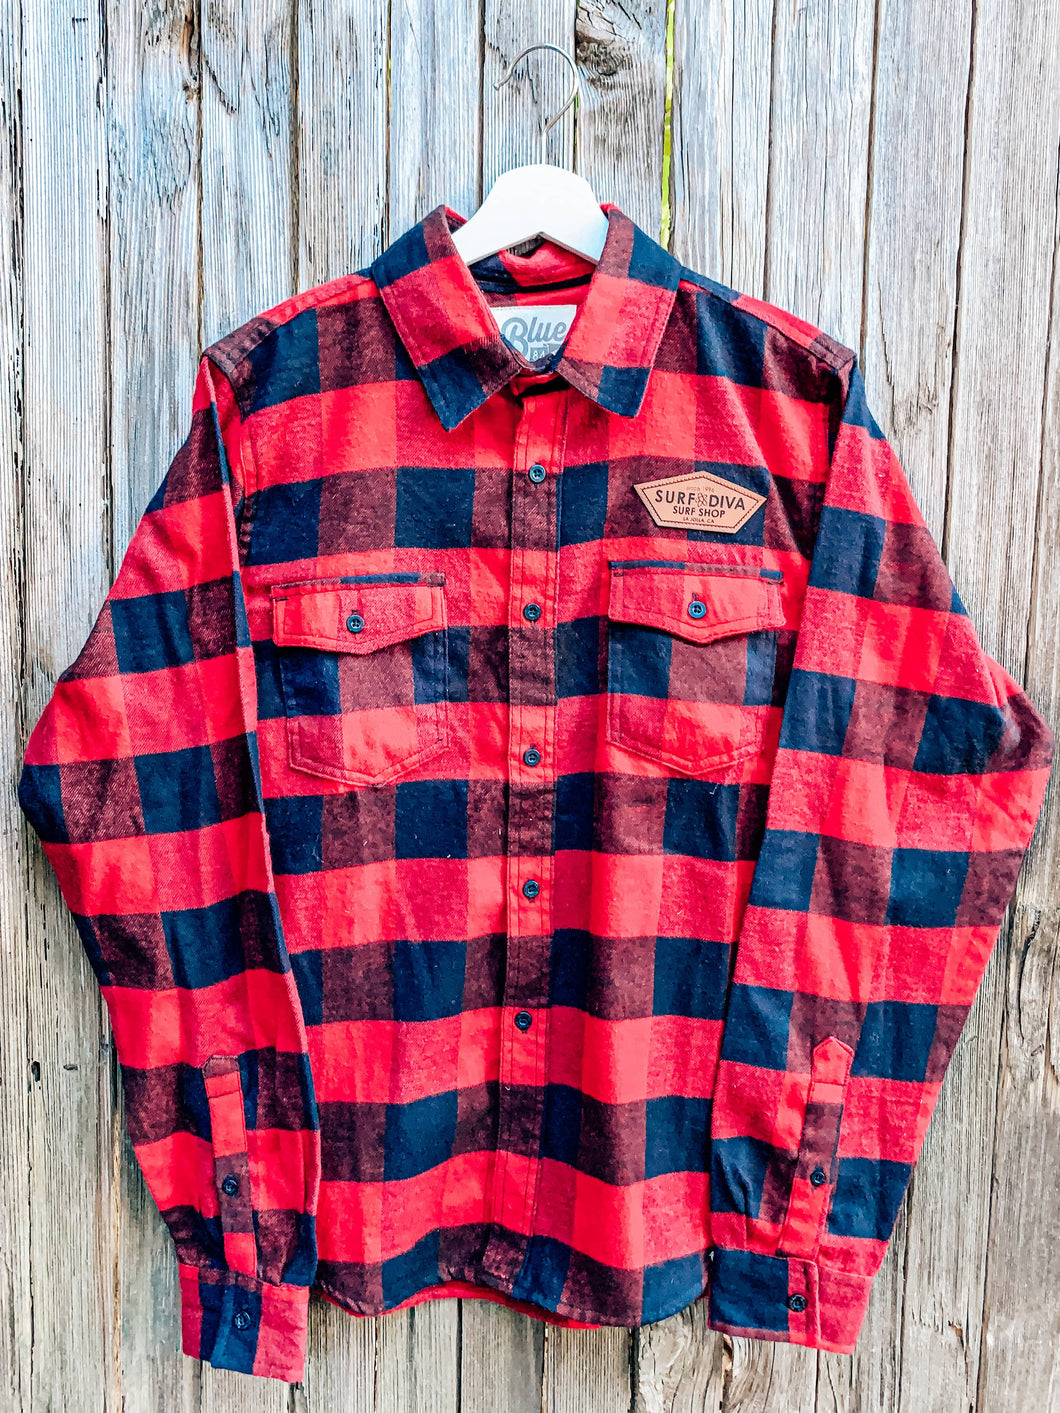 Surf Diva red & black - MENS BUTTON DOWN FLANNEL